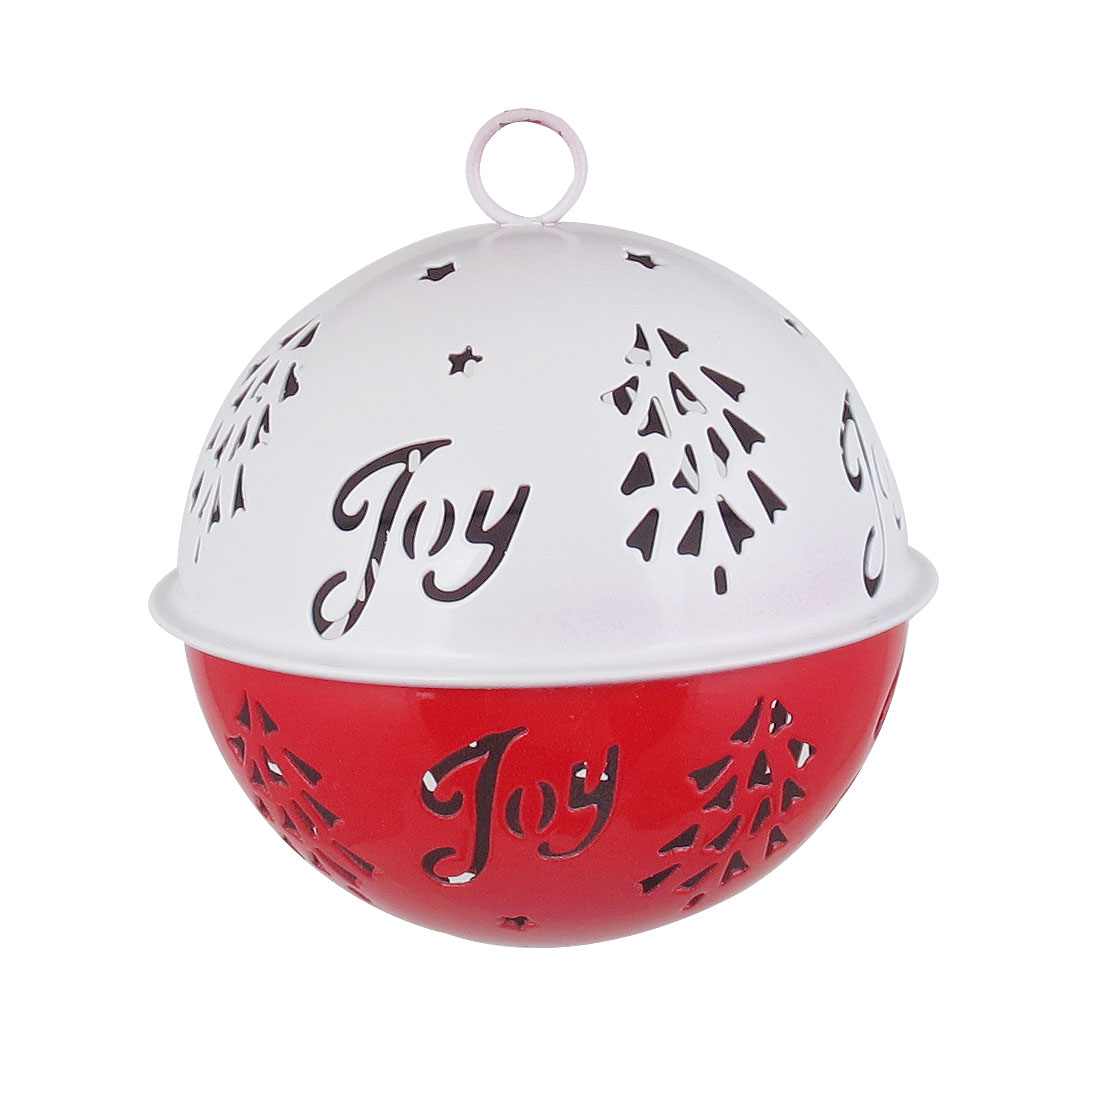 85mm Diameter White Red Metal Christmas Tree Detail Ball Shape Keychain Hollow Out Design Jingle Ring Bell Ornament for Celebration Party Case